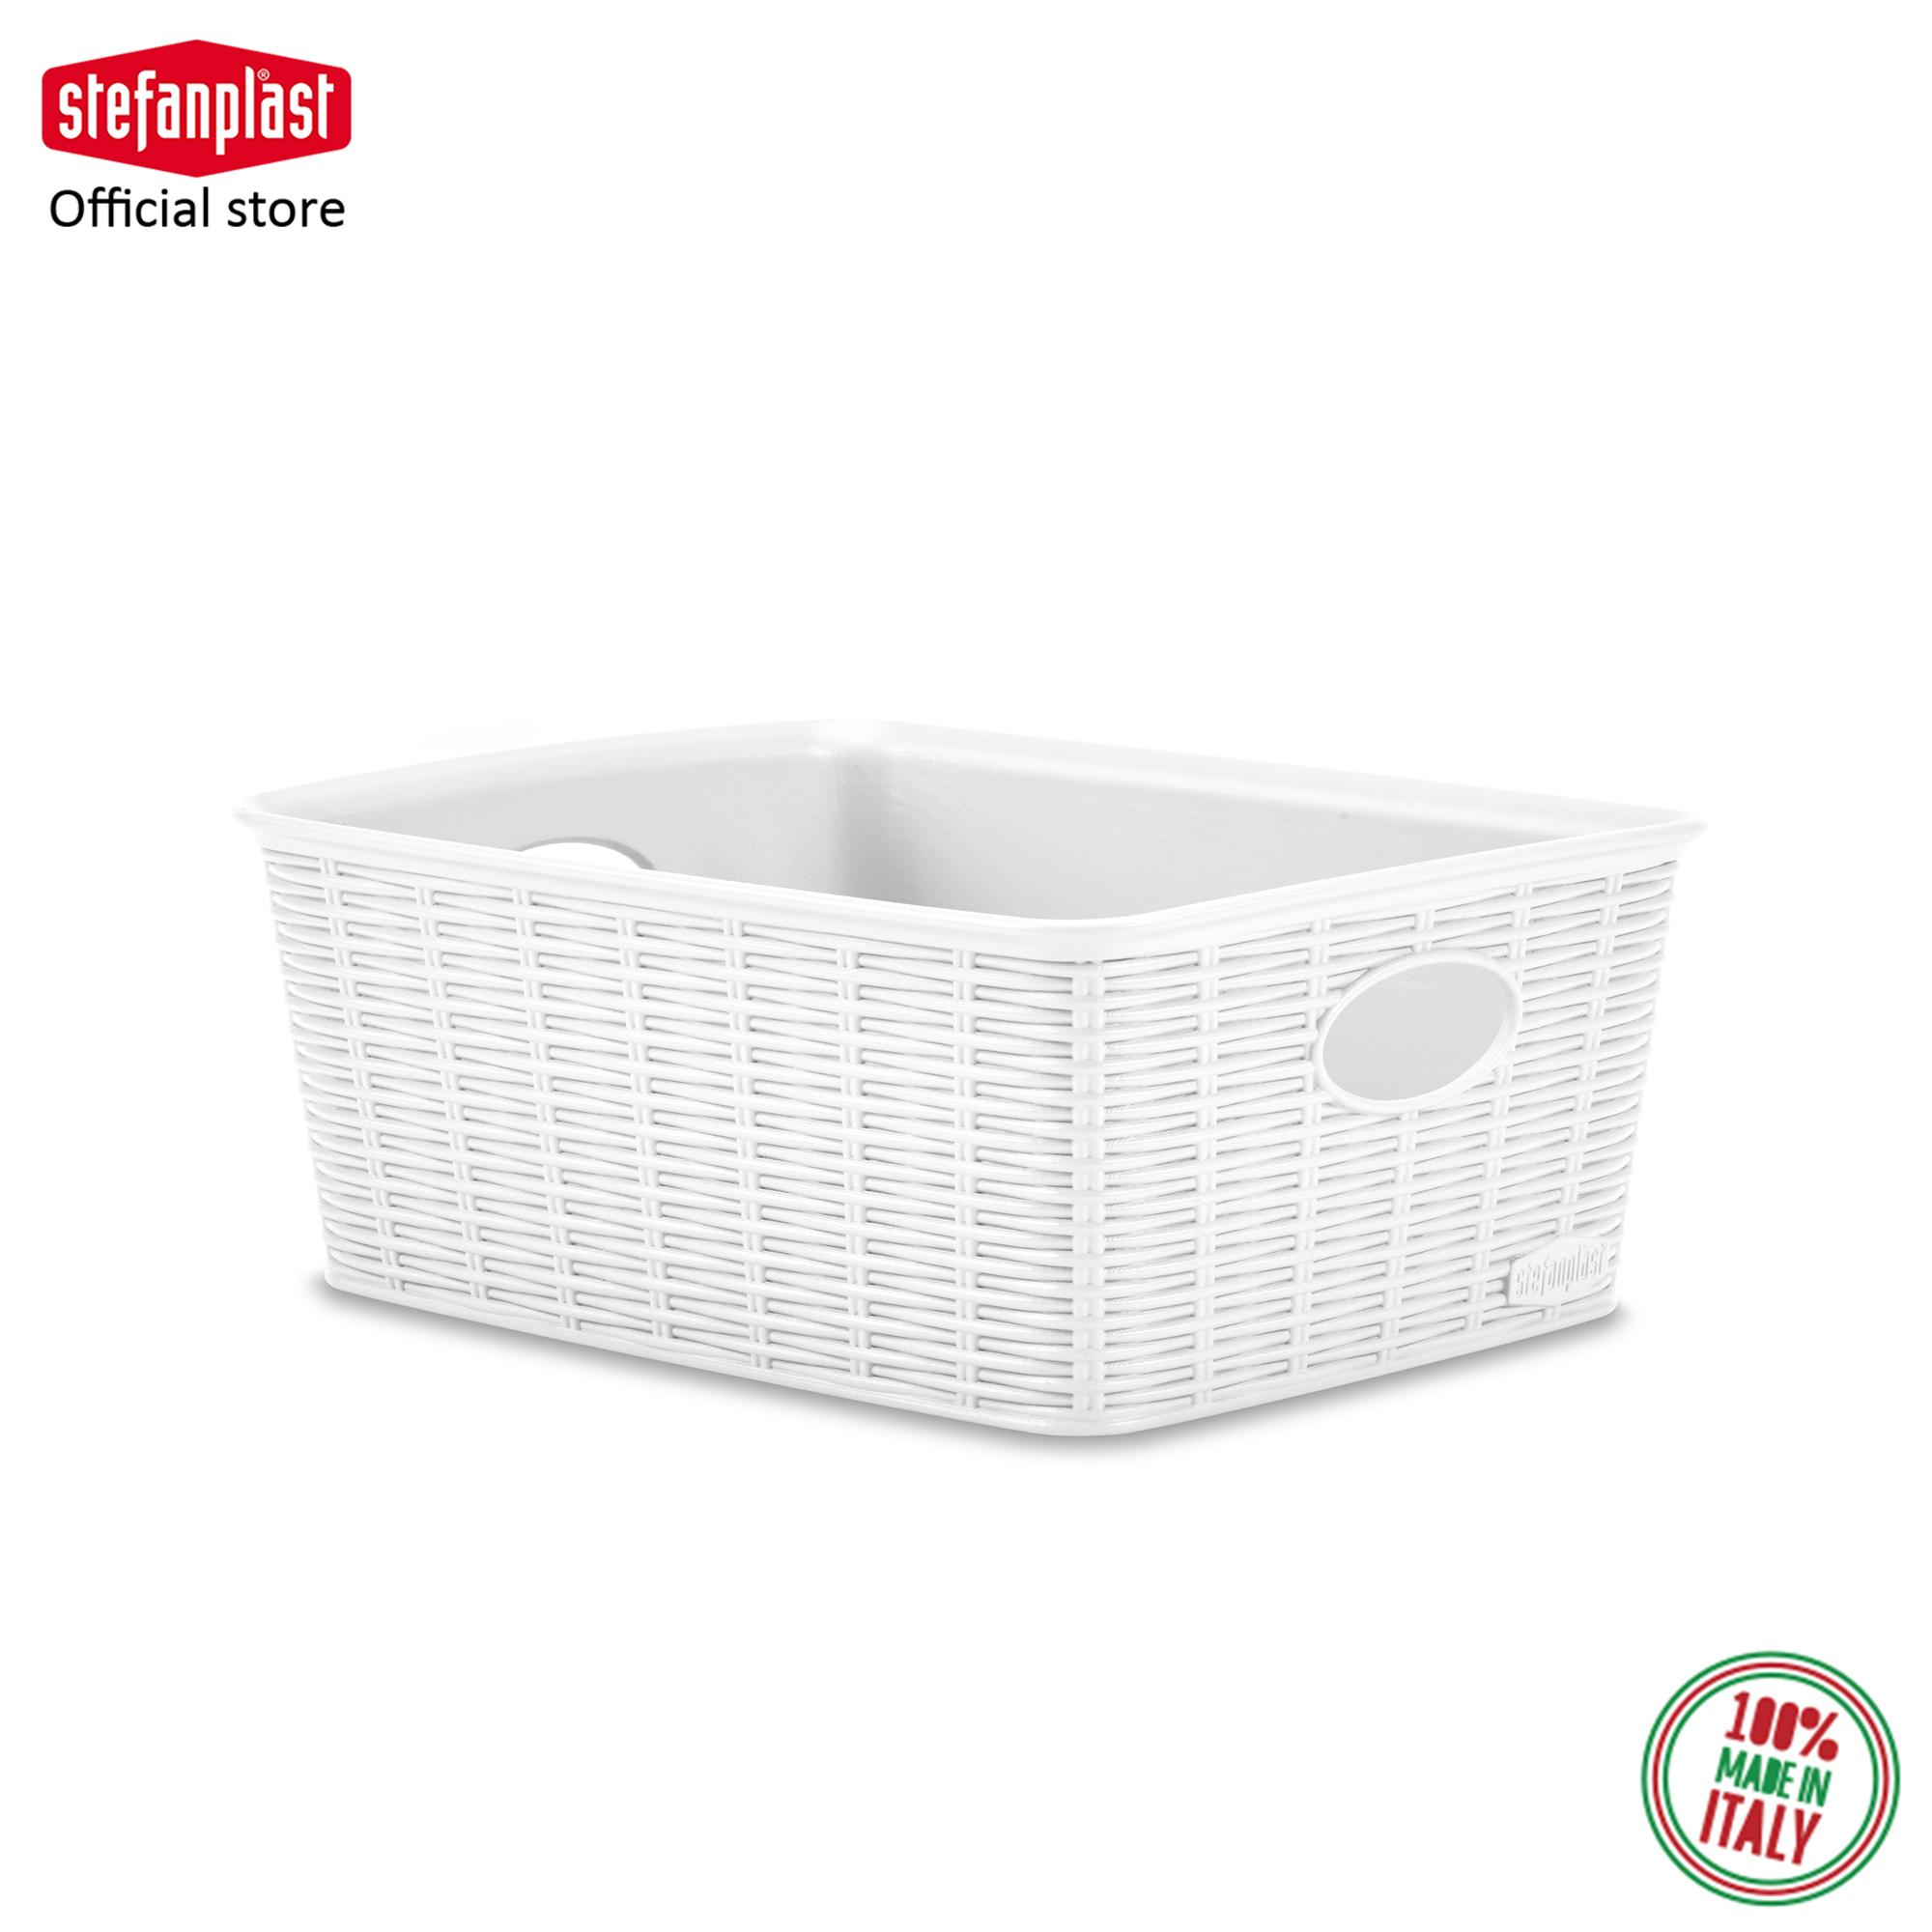 Elegance Basket High (M) 100% Made in Italy  Suitable for Food Contact  HIGH QUALITY  Wicker Finishing